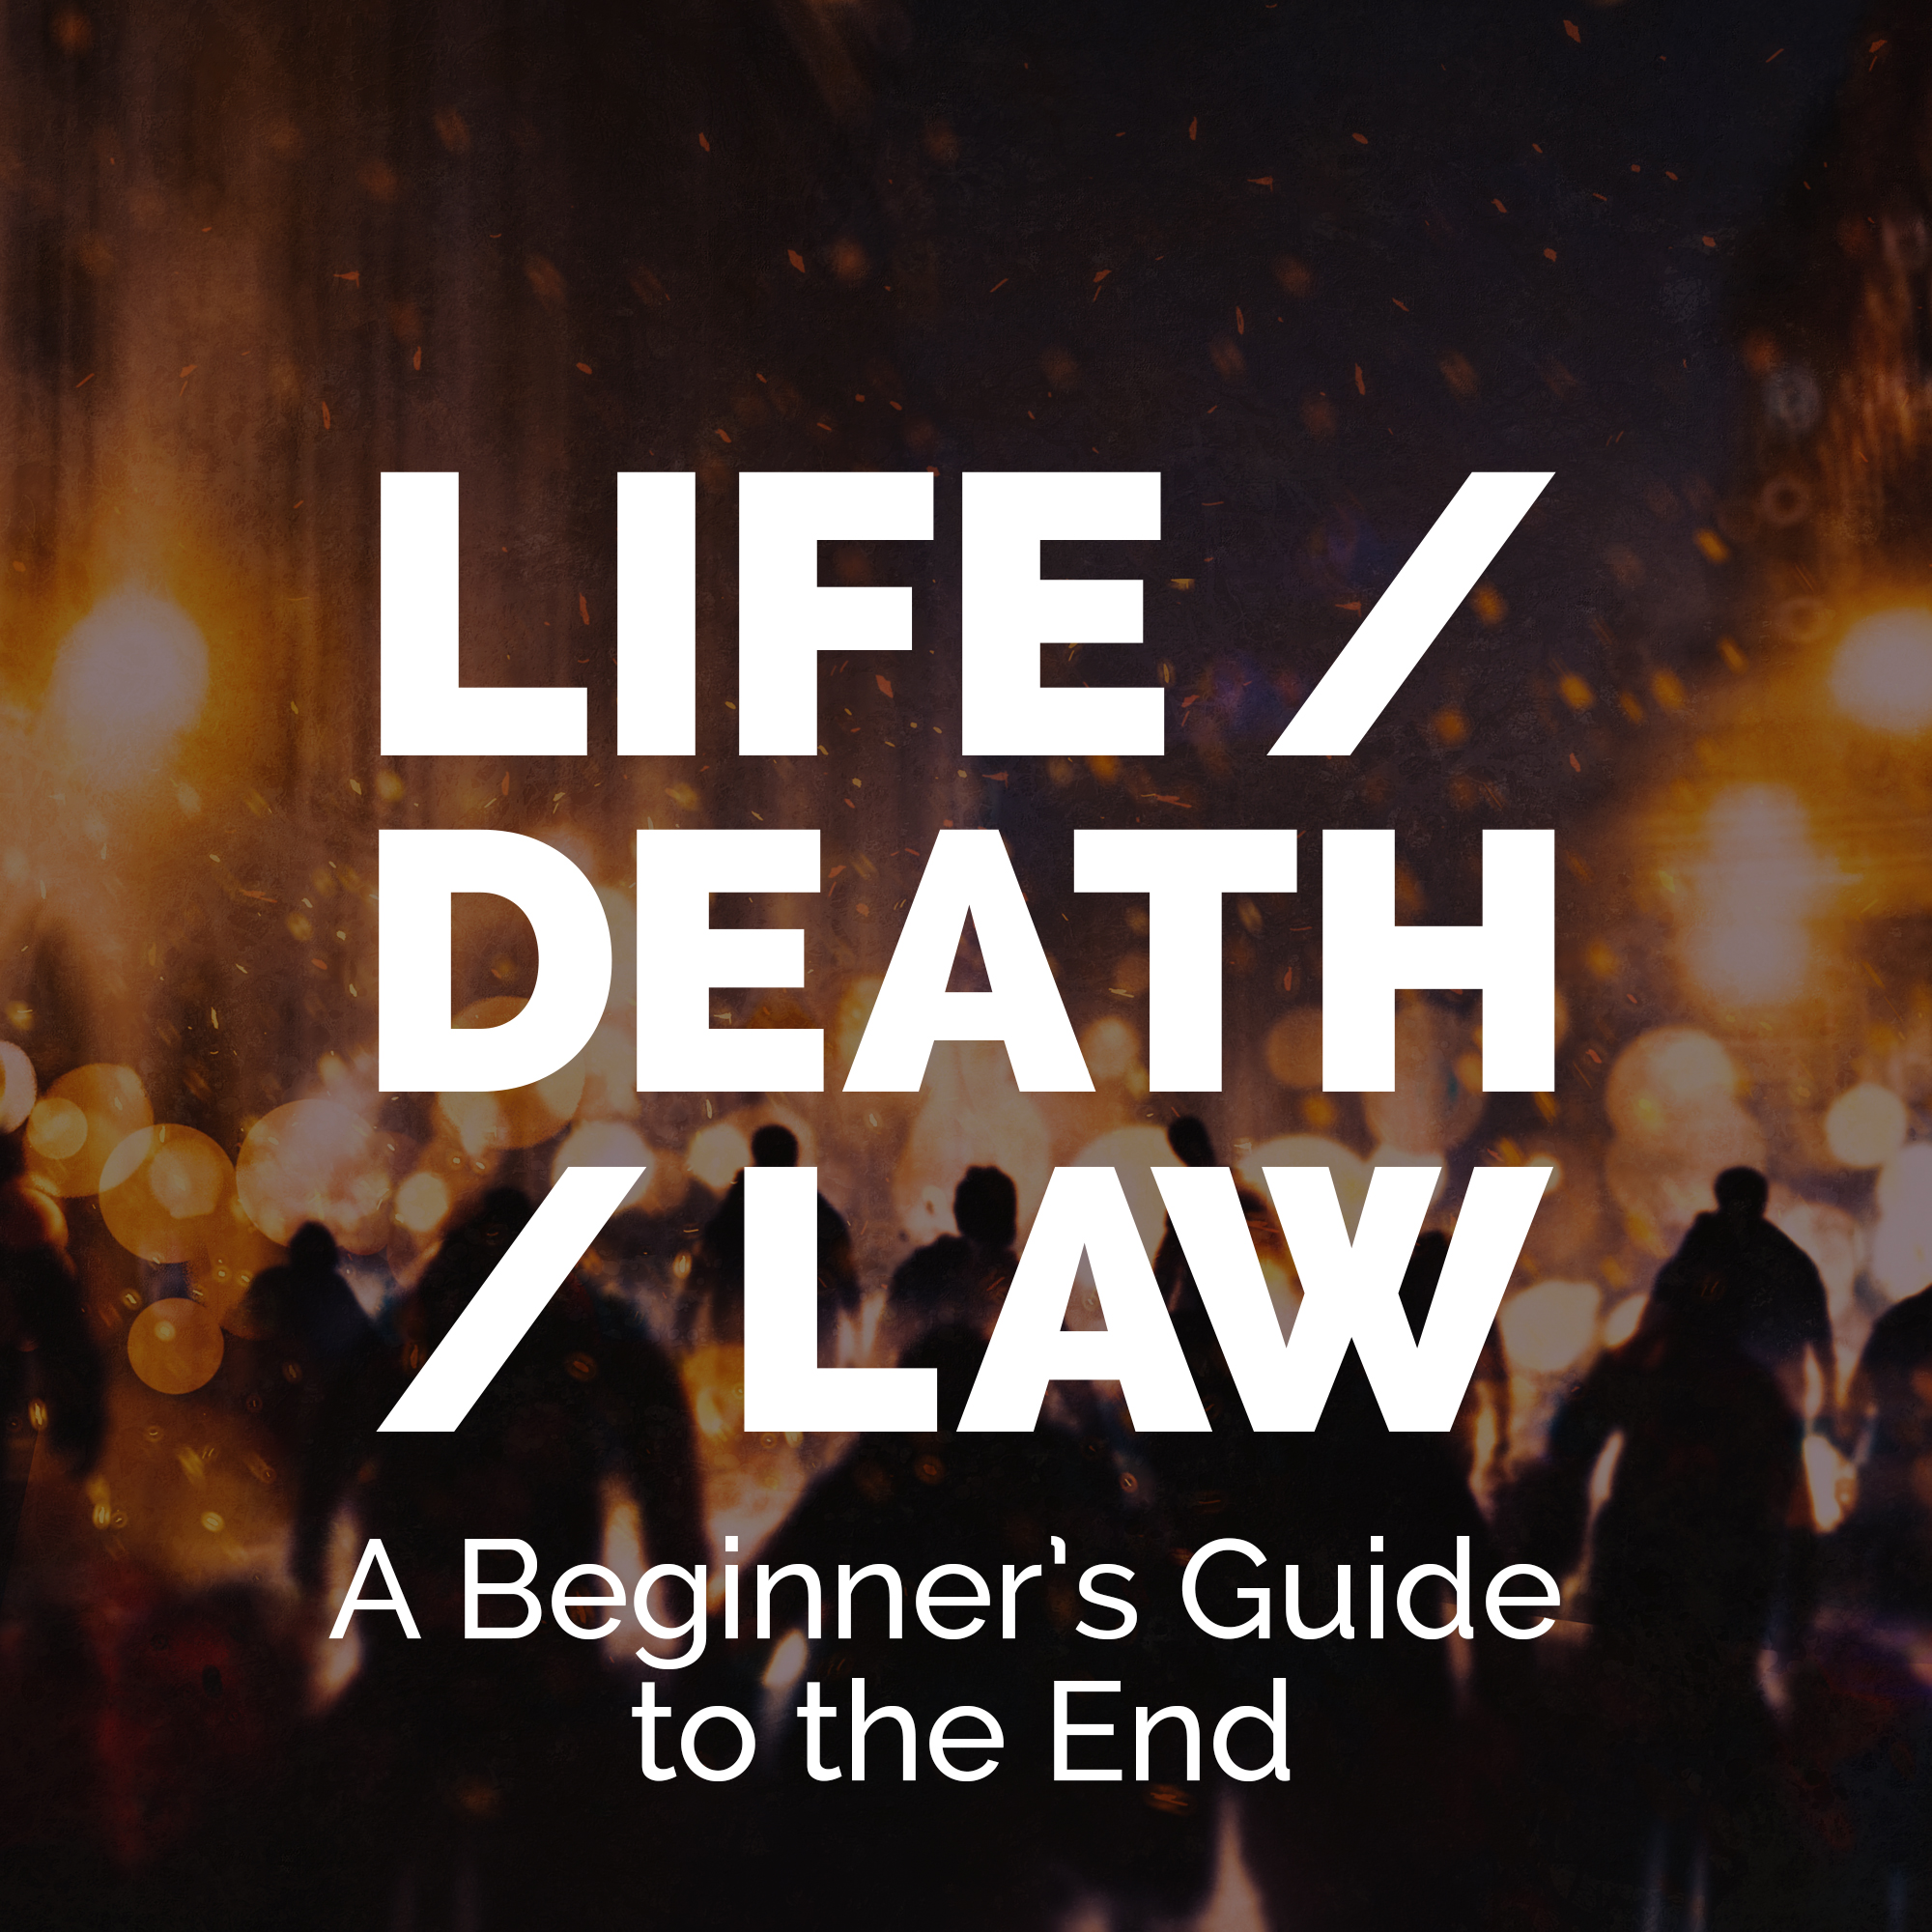 BJ Miller: A Beginner's Guide to the End